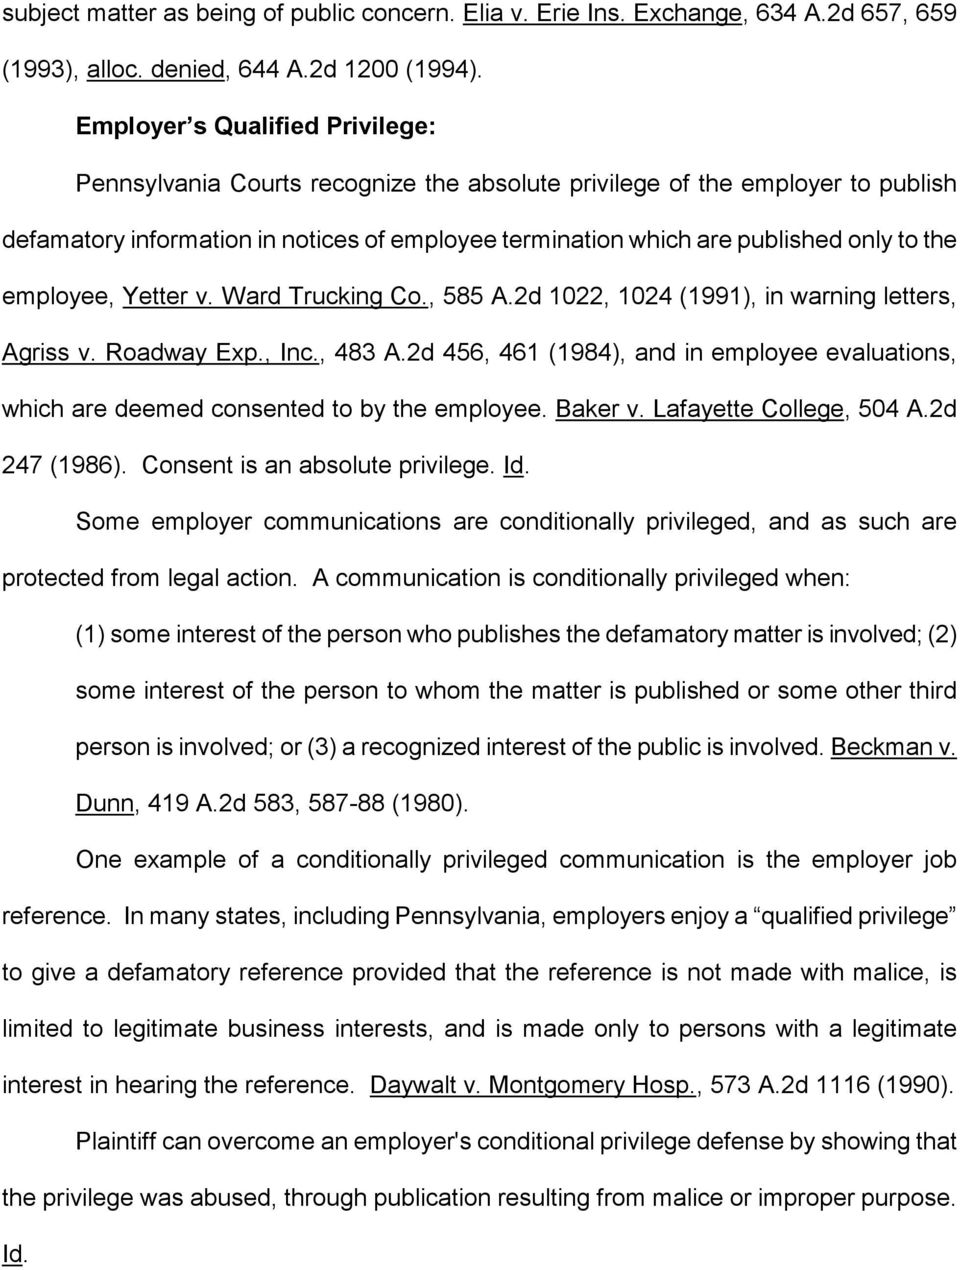 the employee, Yetter v. Ward Trucking Co., 585 A.2d 1022, 1024 (1991), in warning letters, Agriss v. Roadway Exp., Inc., 483 A.